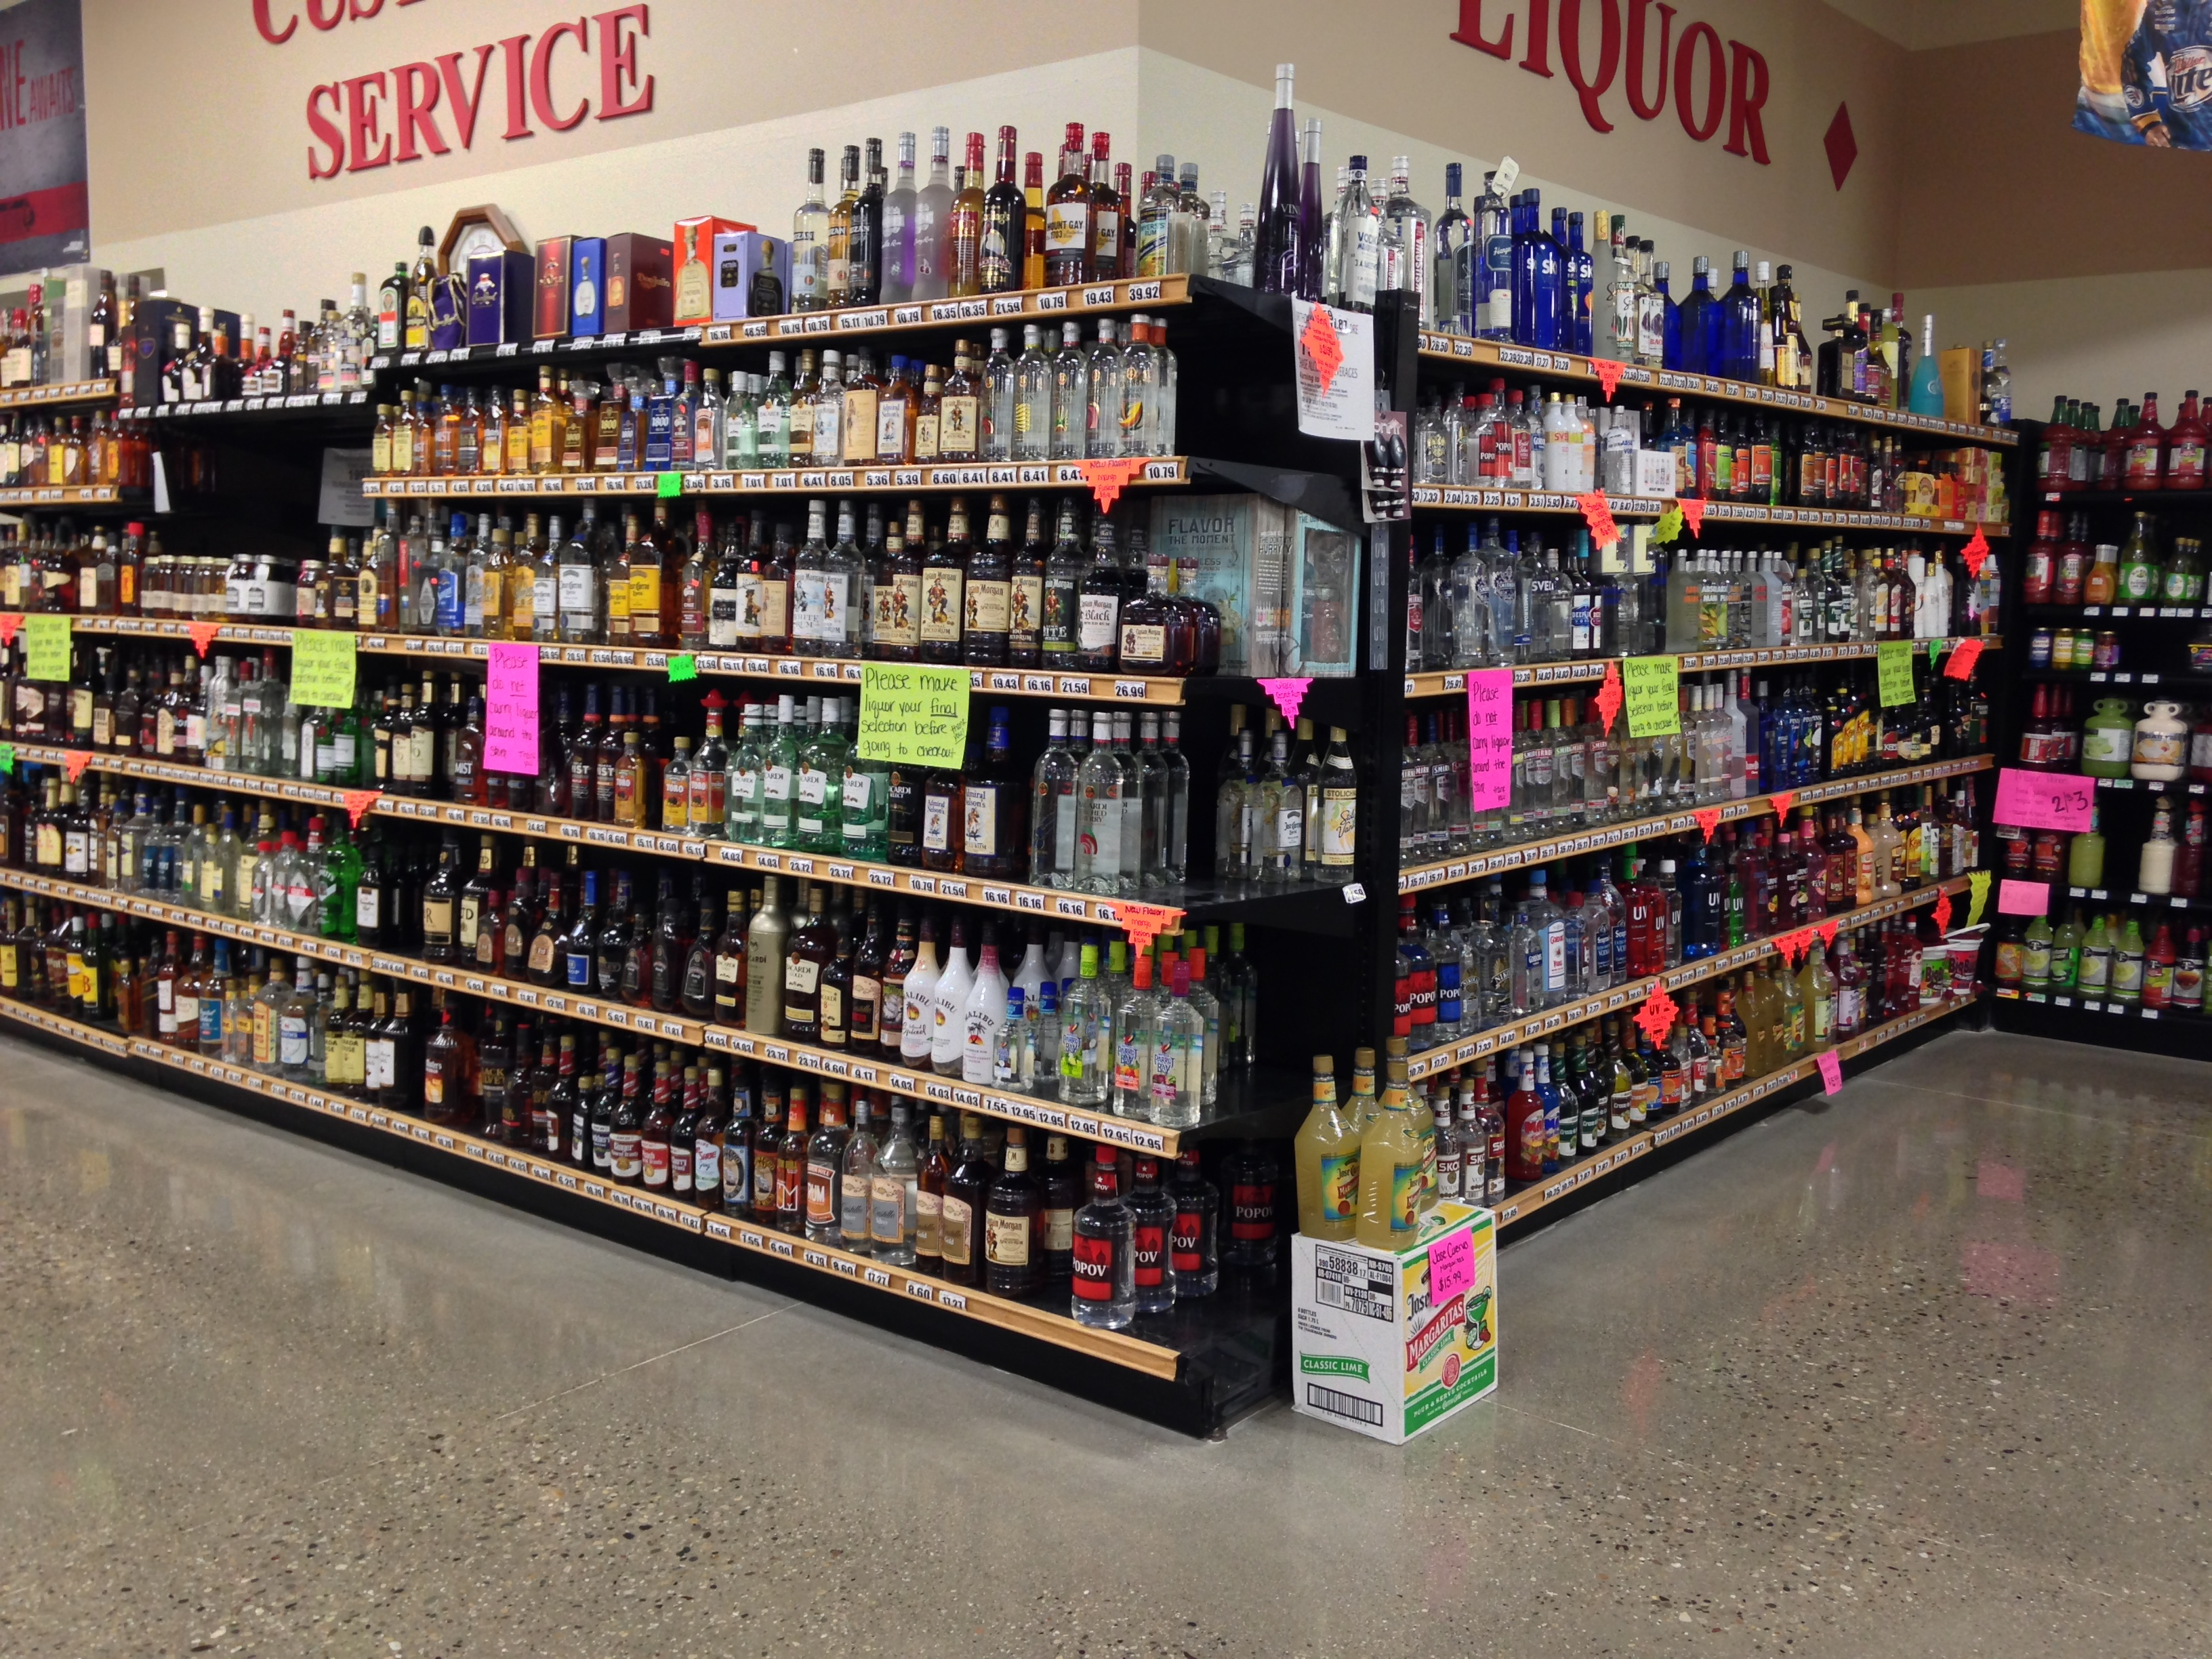 Liquor: We are a state liquor store and have the largest selection of liquor  in the White Lake Area.